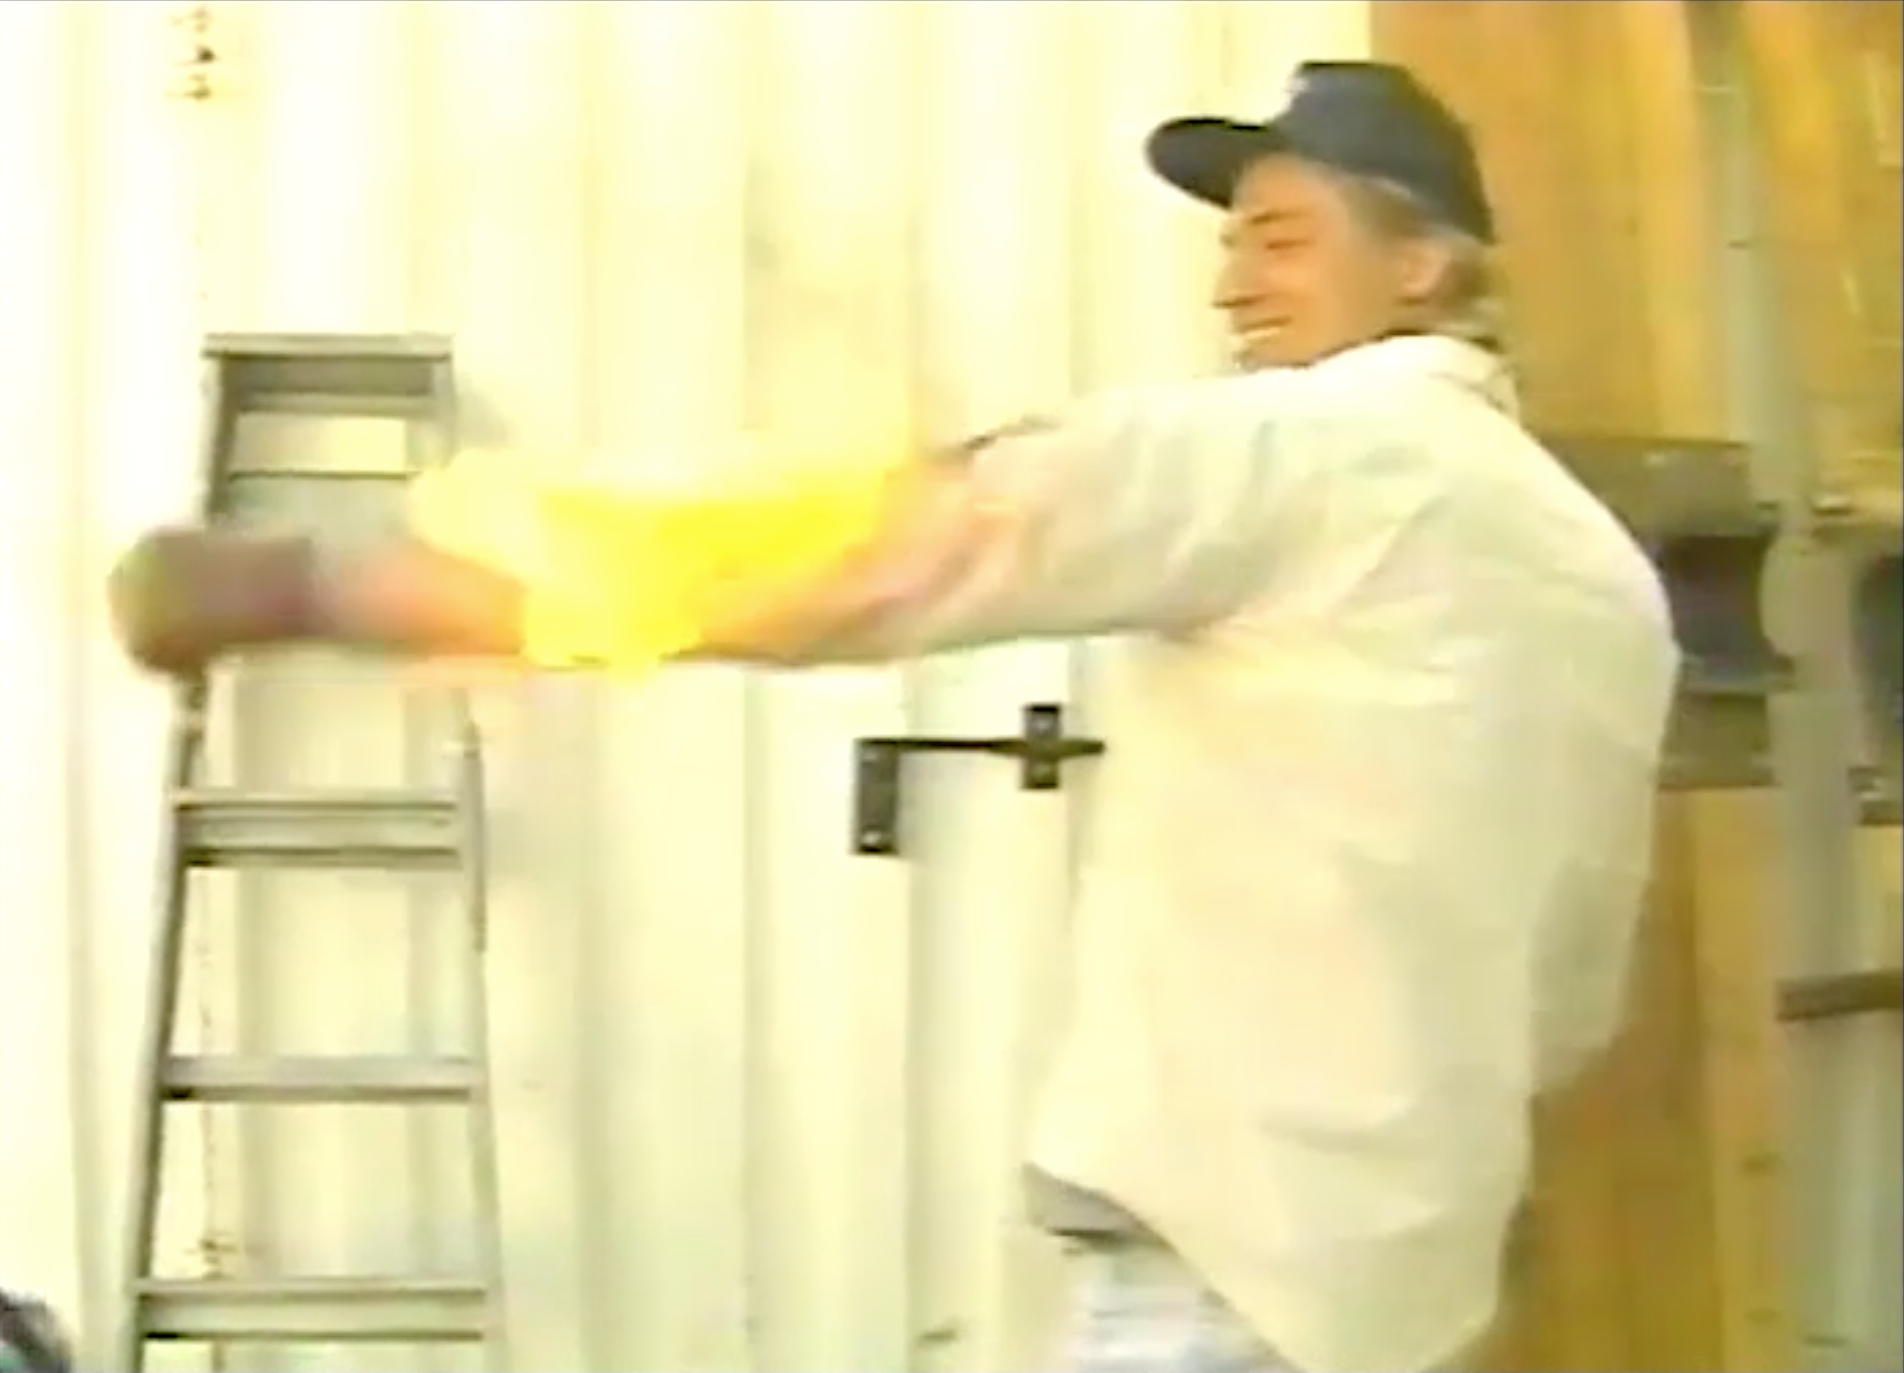 Stuntman Mike Johnson taught Jim a number of stunts including this fire burn on a Videosyncrasy episode in 1991. The flames spread to engulf Jim's entire body, explaining his appearance today.